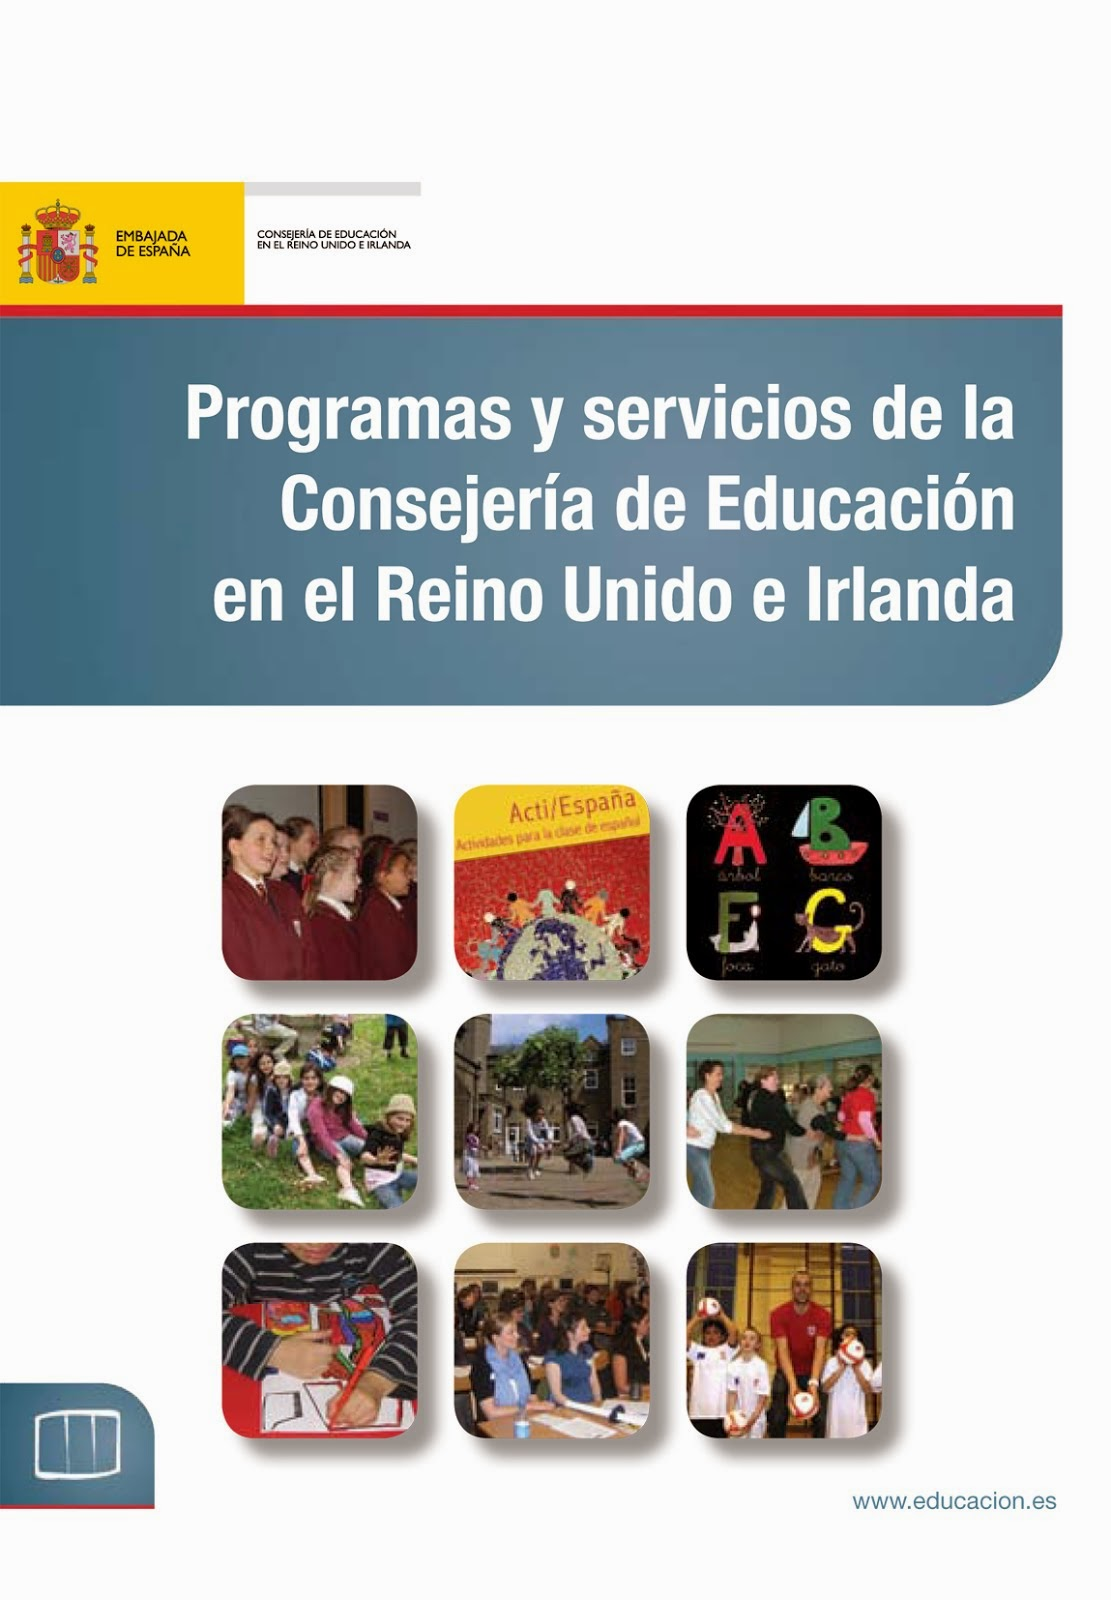 Resource centres of the Consejería de Educación in the UK